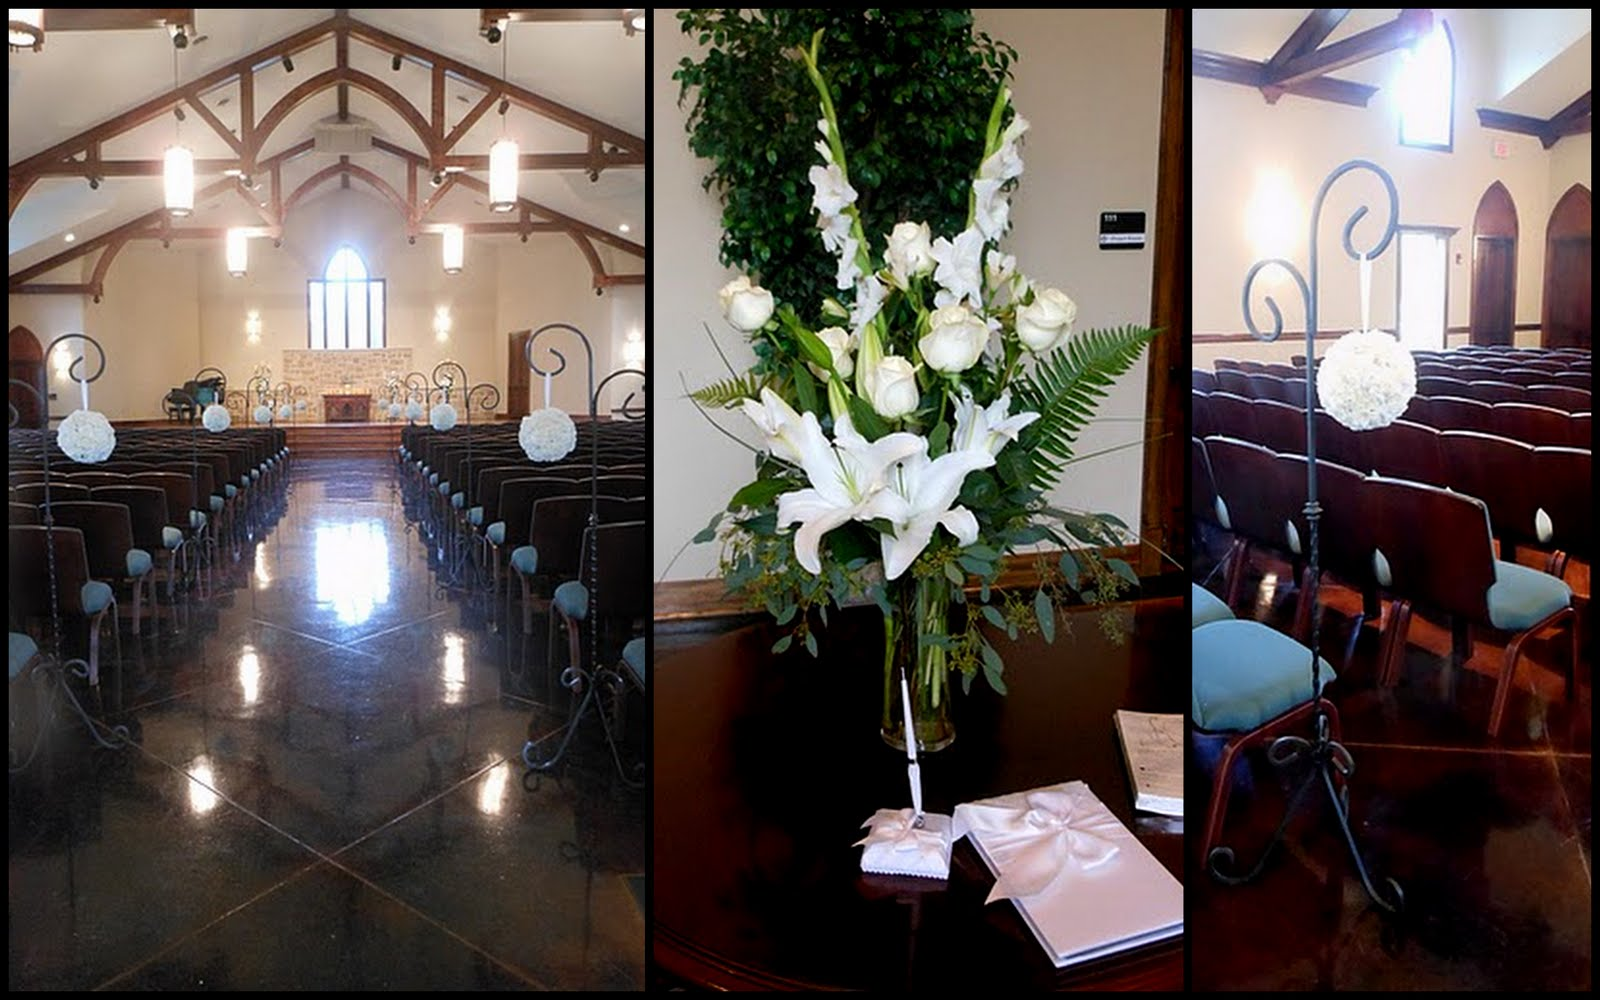 the ceremony was held at grace church in the woodlands and the all white color scheme was perfect for the dark interior of the chapel